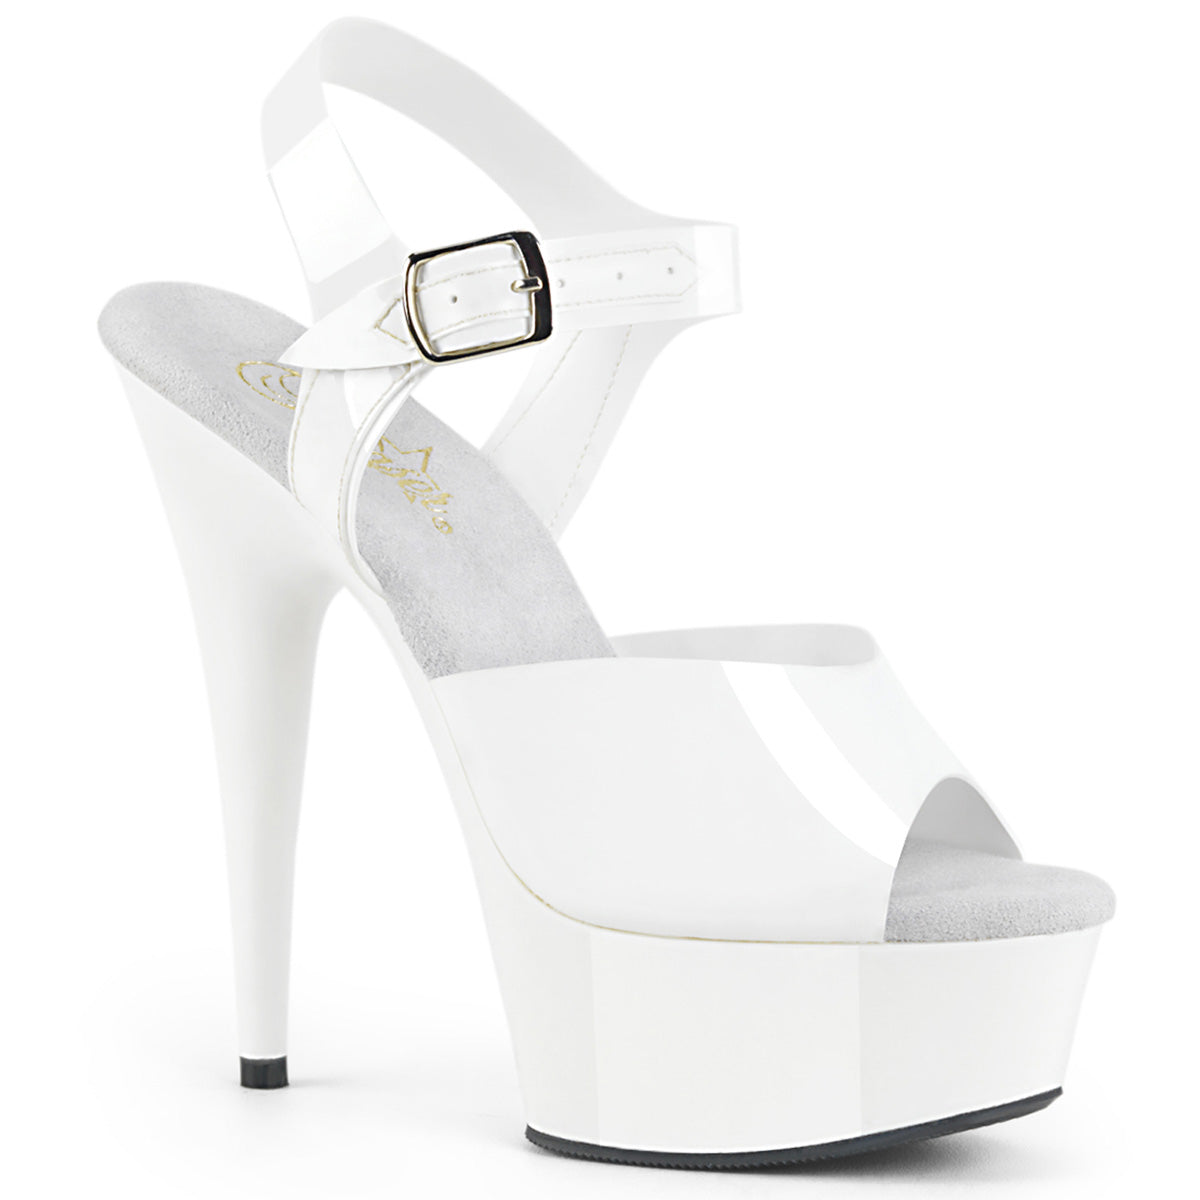 16949341cfca DELIGHT-608N Pleaser Sexy Shoes 6 Inch Stiletto Heel Ankle Strap ...